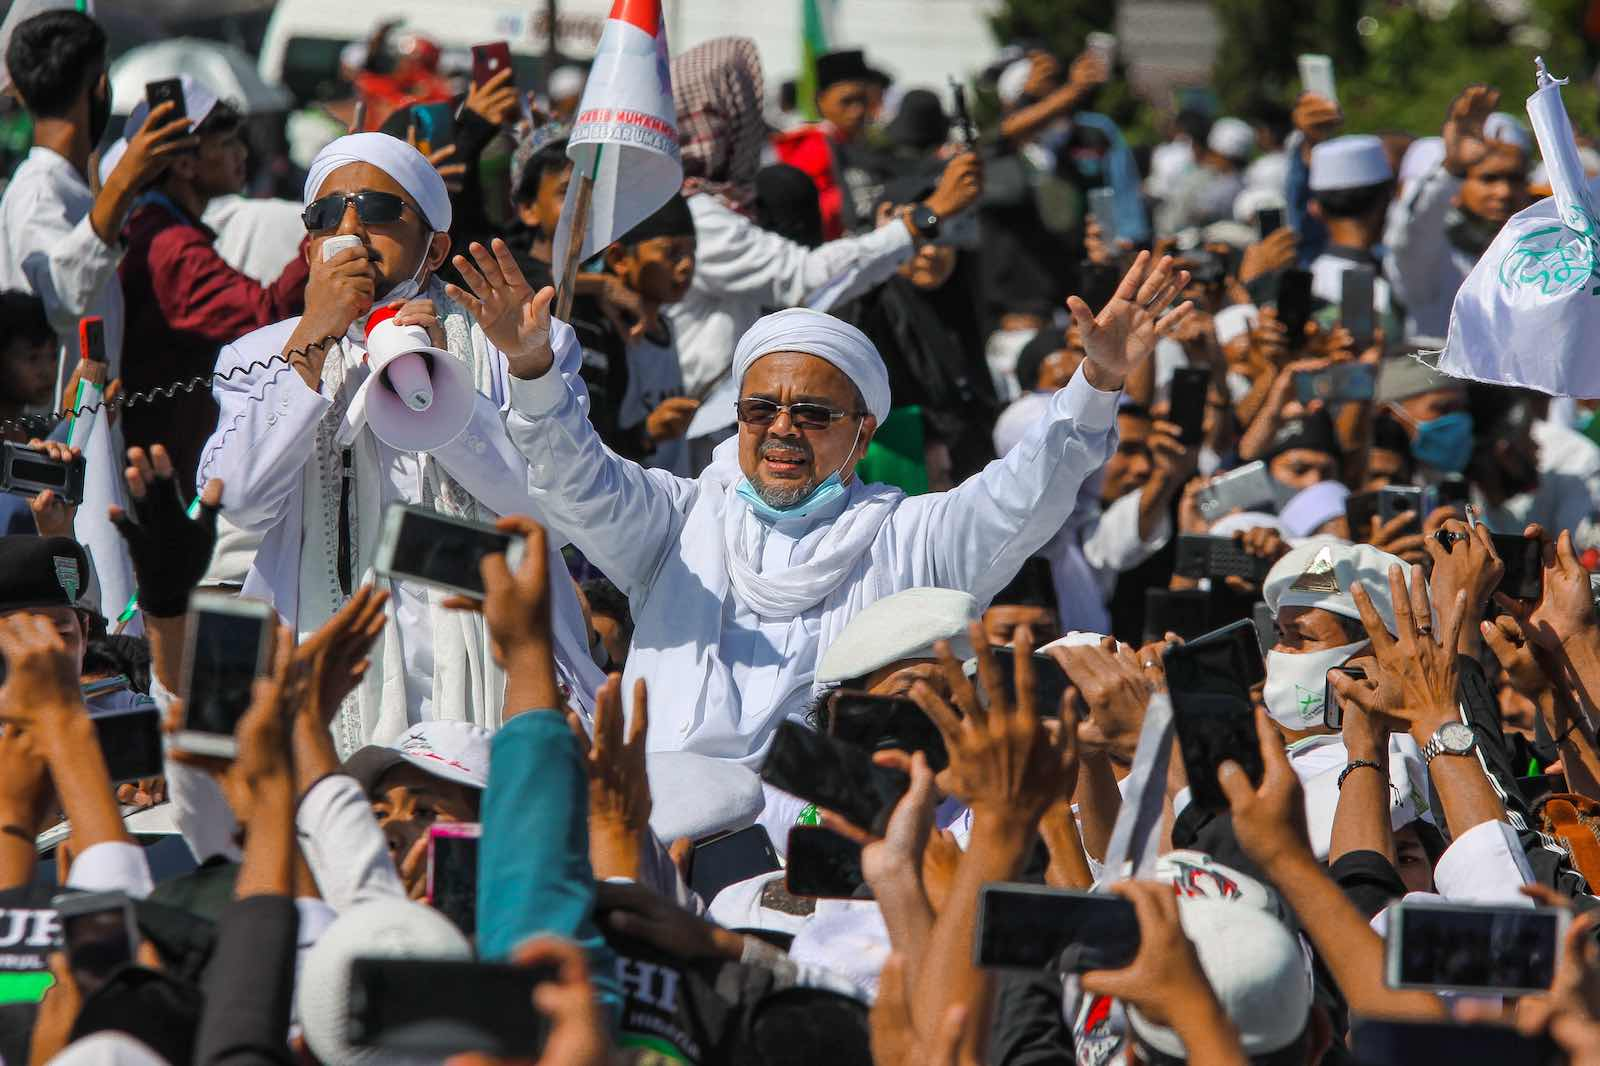 Muslim cleric Rizieq Shihab gestures to supporters as he arrives to inaugurate a mosque in Bogor, Indonesia, 13 November (Rangga Firmansyah/NurPhoto via Getty Images)